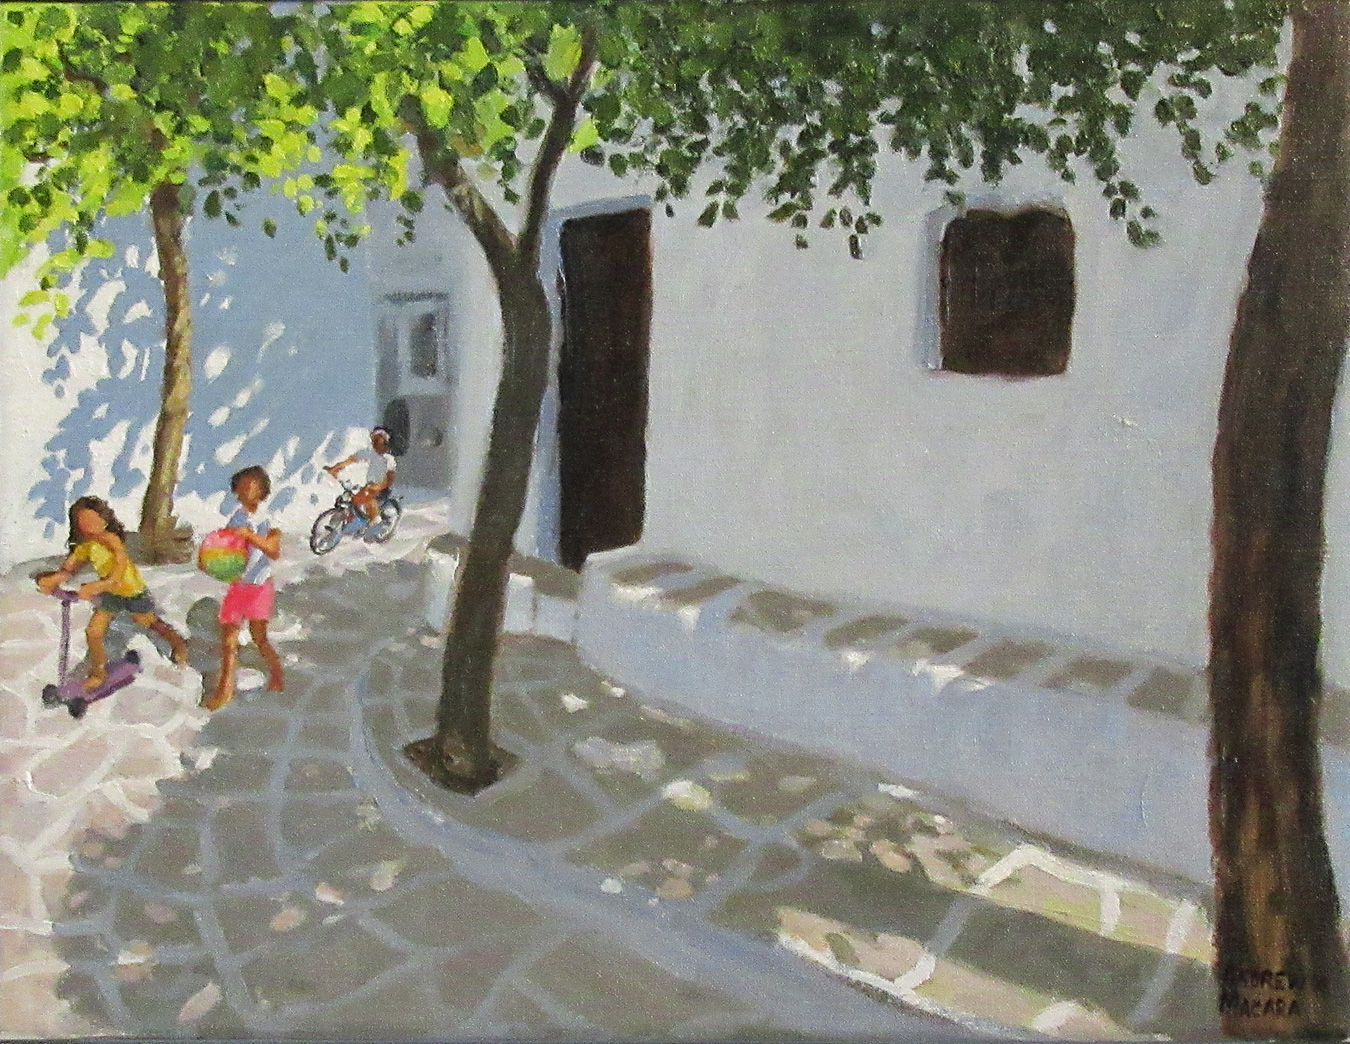 Three Girls, Chora, Folegandros, Greece by  Andrew Macara RBA NEAC